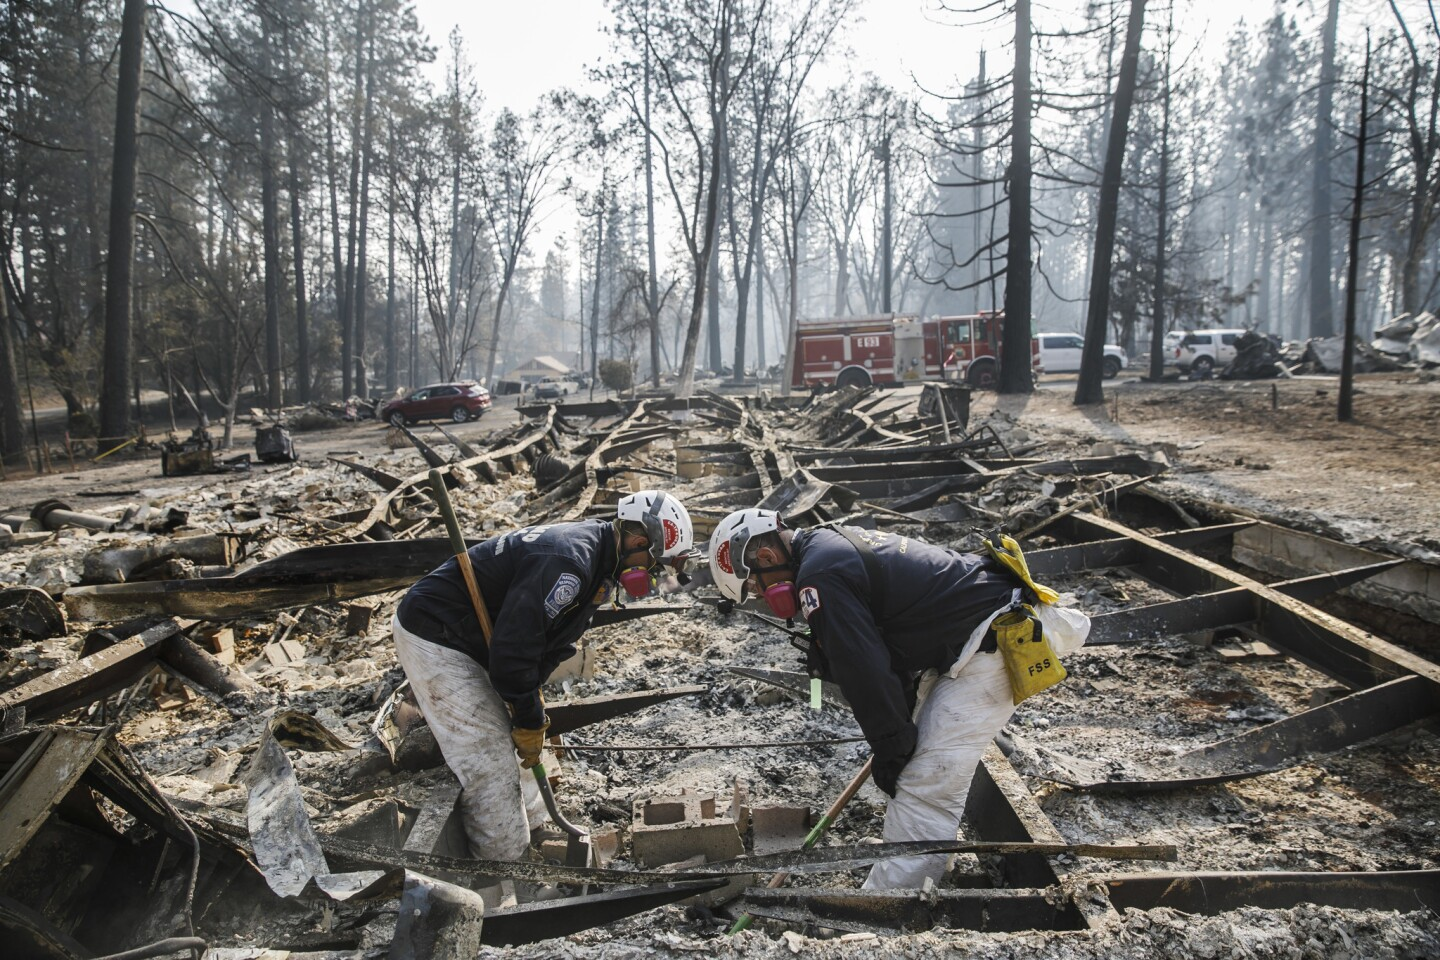 A search-and-rescue team carefully scans the area where there might be human remains after the Camp fire destroyed most of Paradise, Calif.